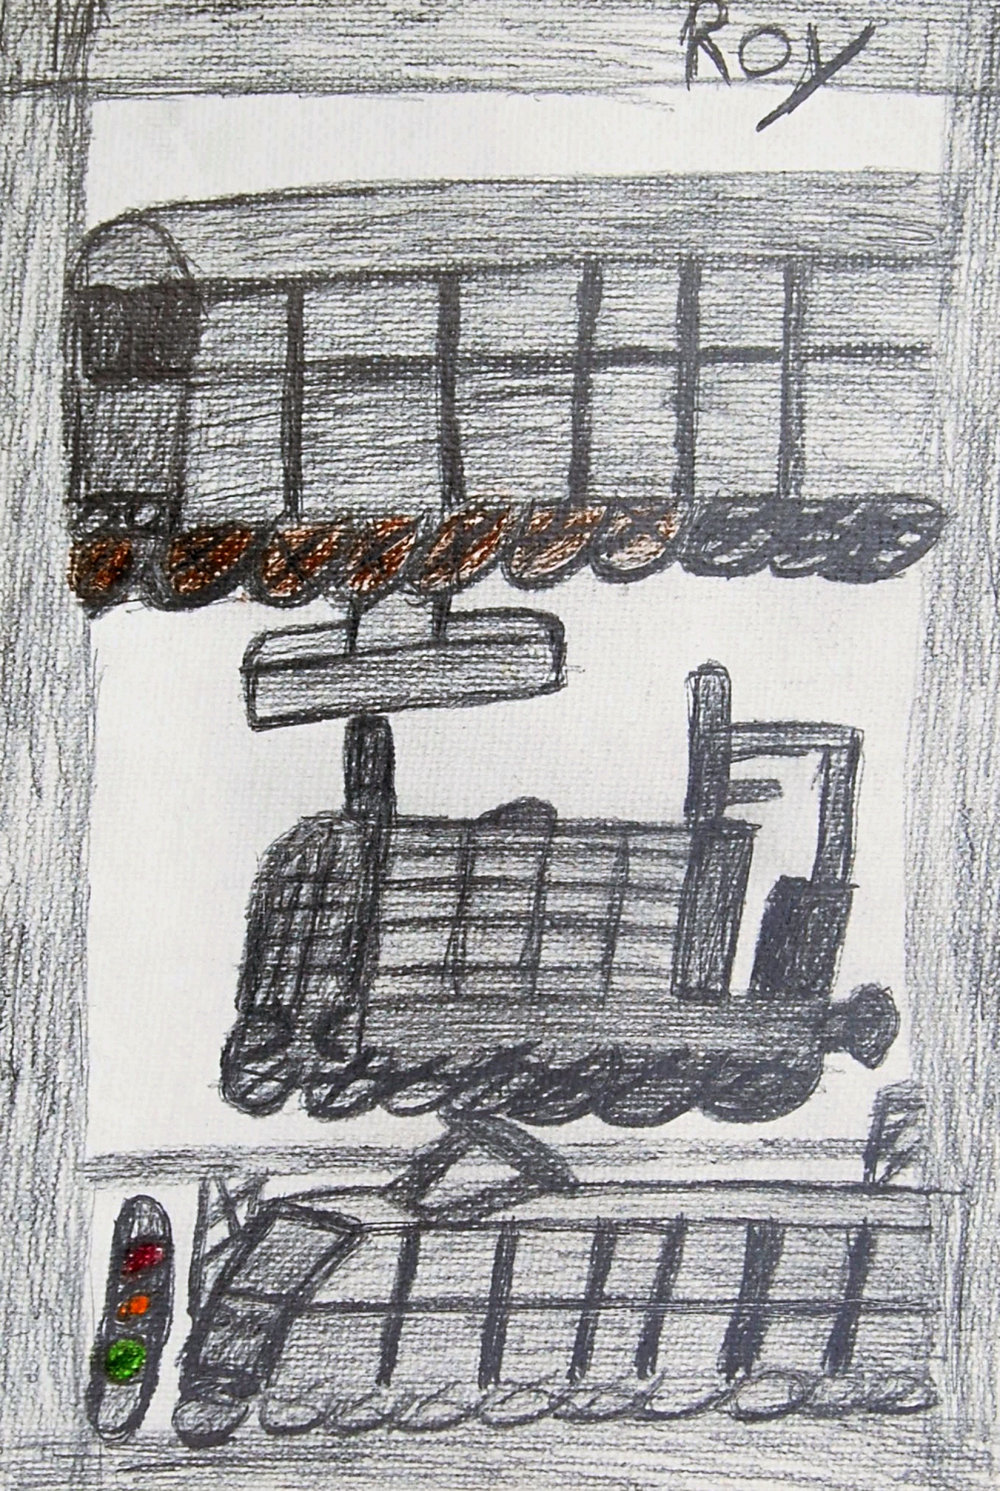 Untitled (Trains) Pencil on paper 29x42cm